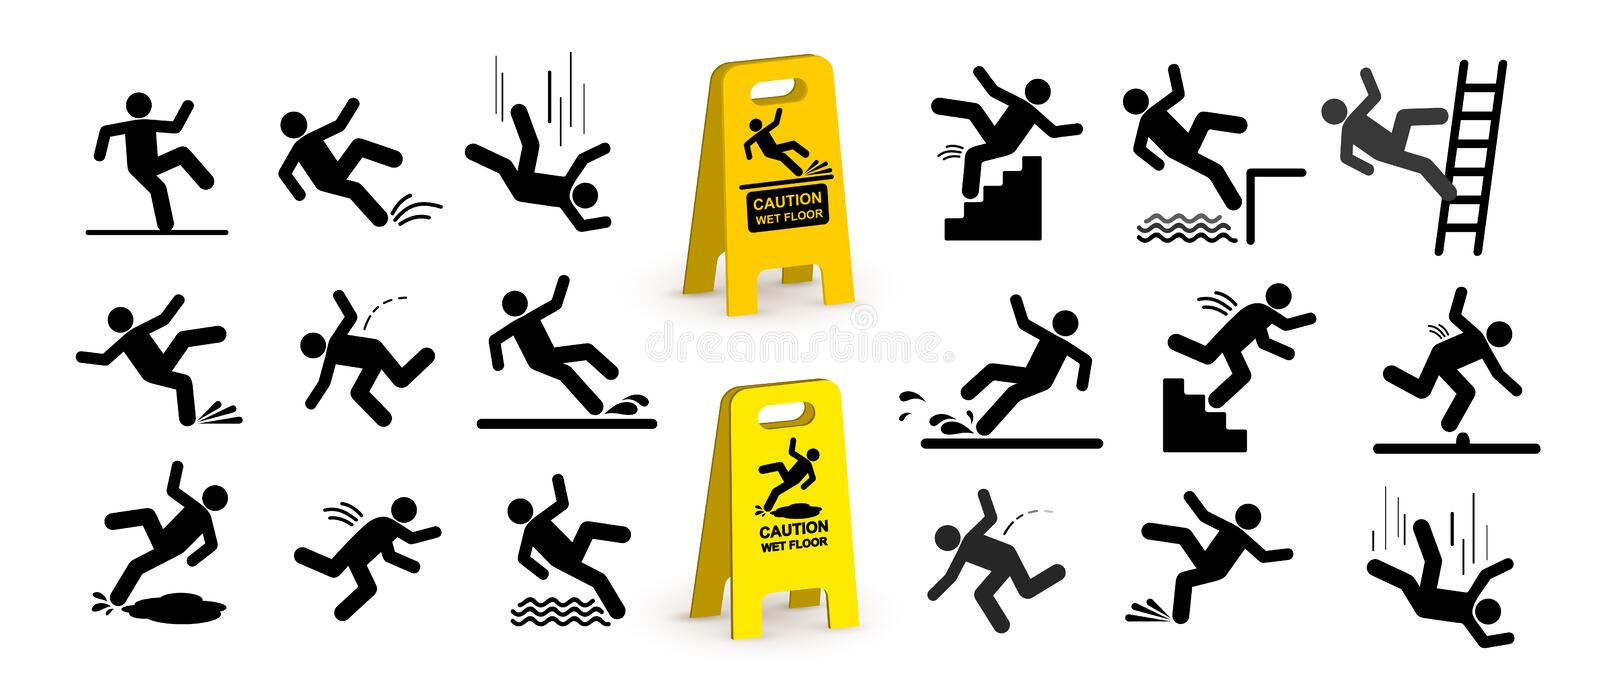 Set of caution symbols with stick figure man falling. Falling down the stairs and over the edge. Wet floor, tripping on stairs. Wo vector illustration